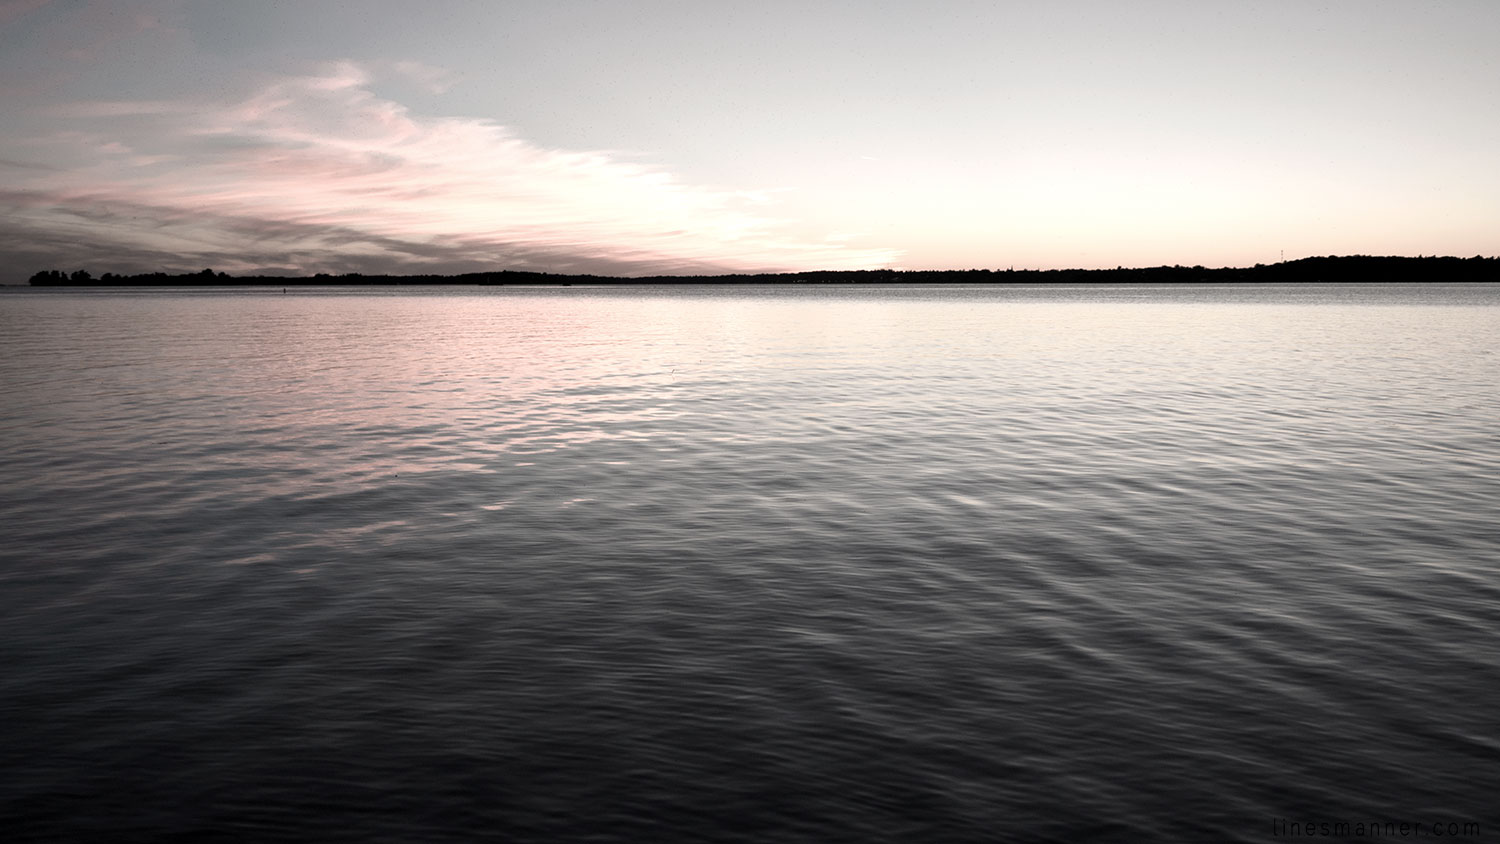 Lines-Manner-Photography-Escape-Peaceful-Serenity-Travel-Canada-Quebec-Places-Holiday-Weekend-Islands-World-Trip-12